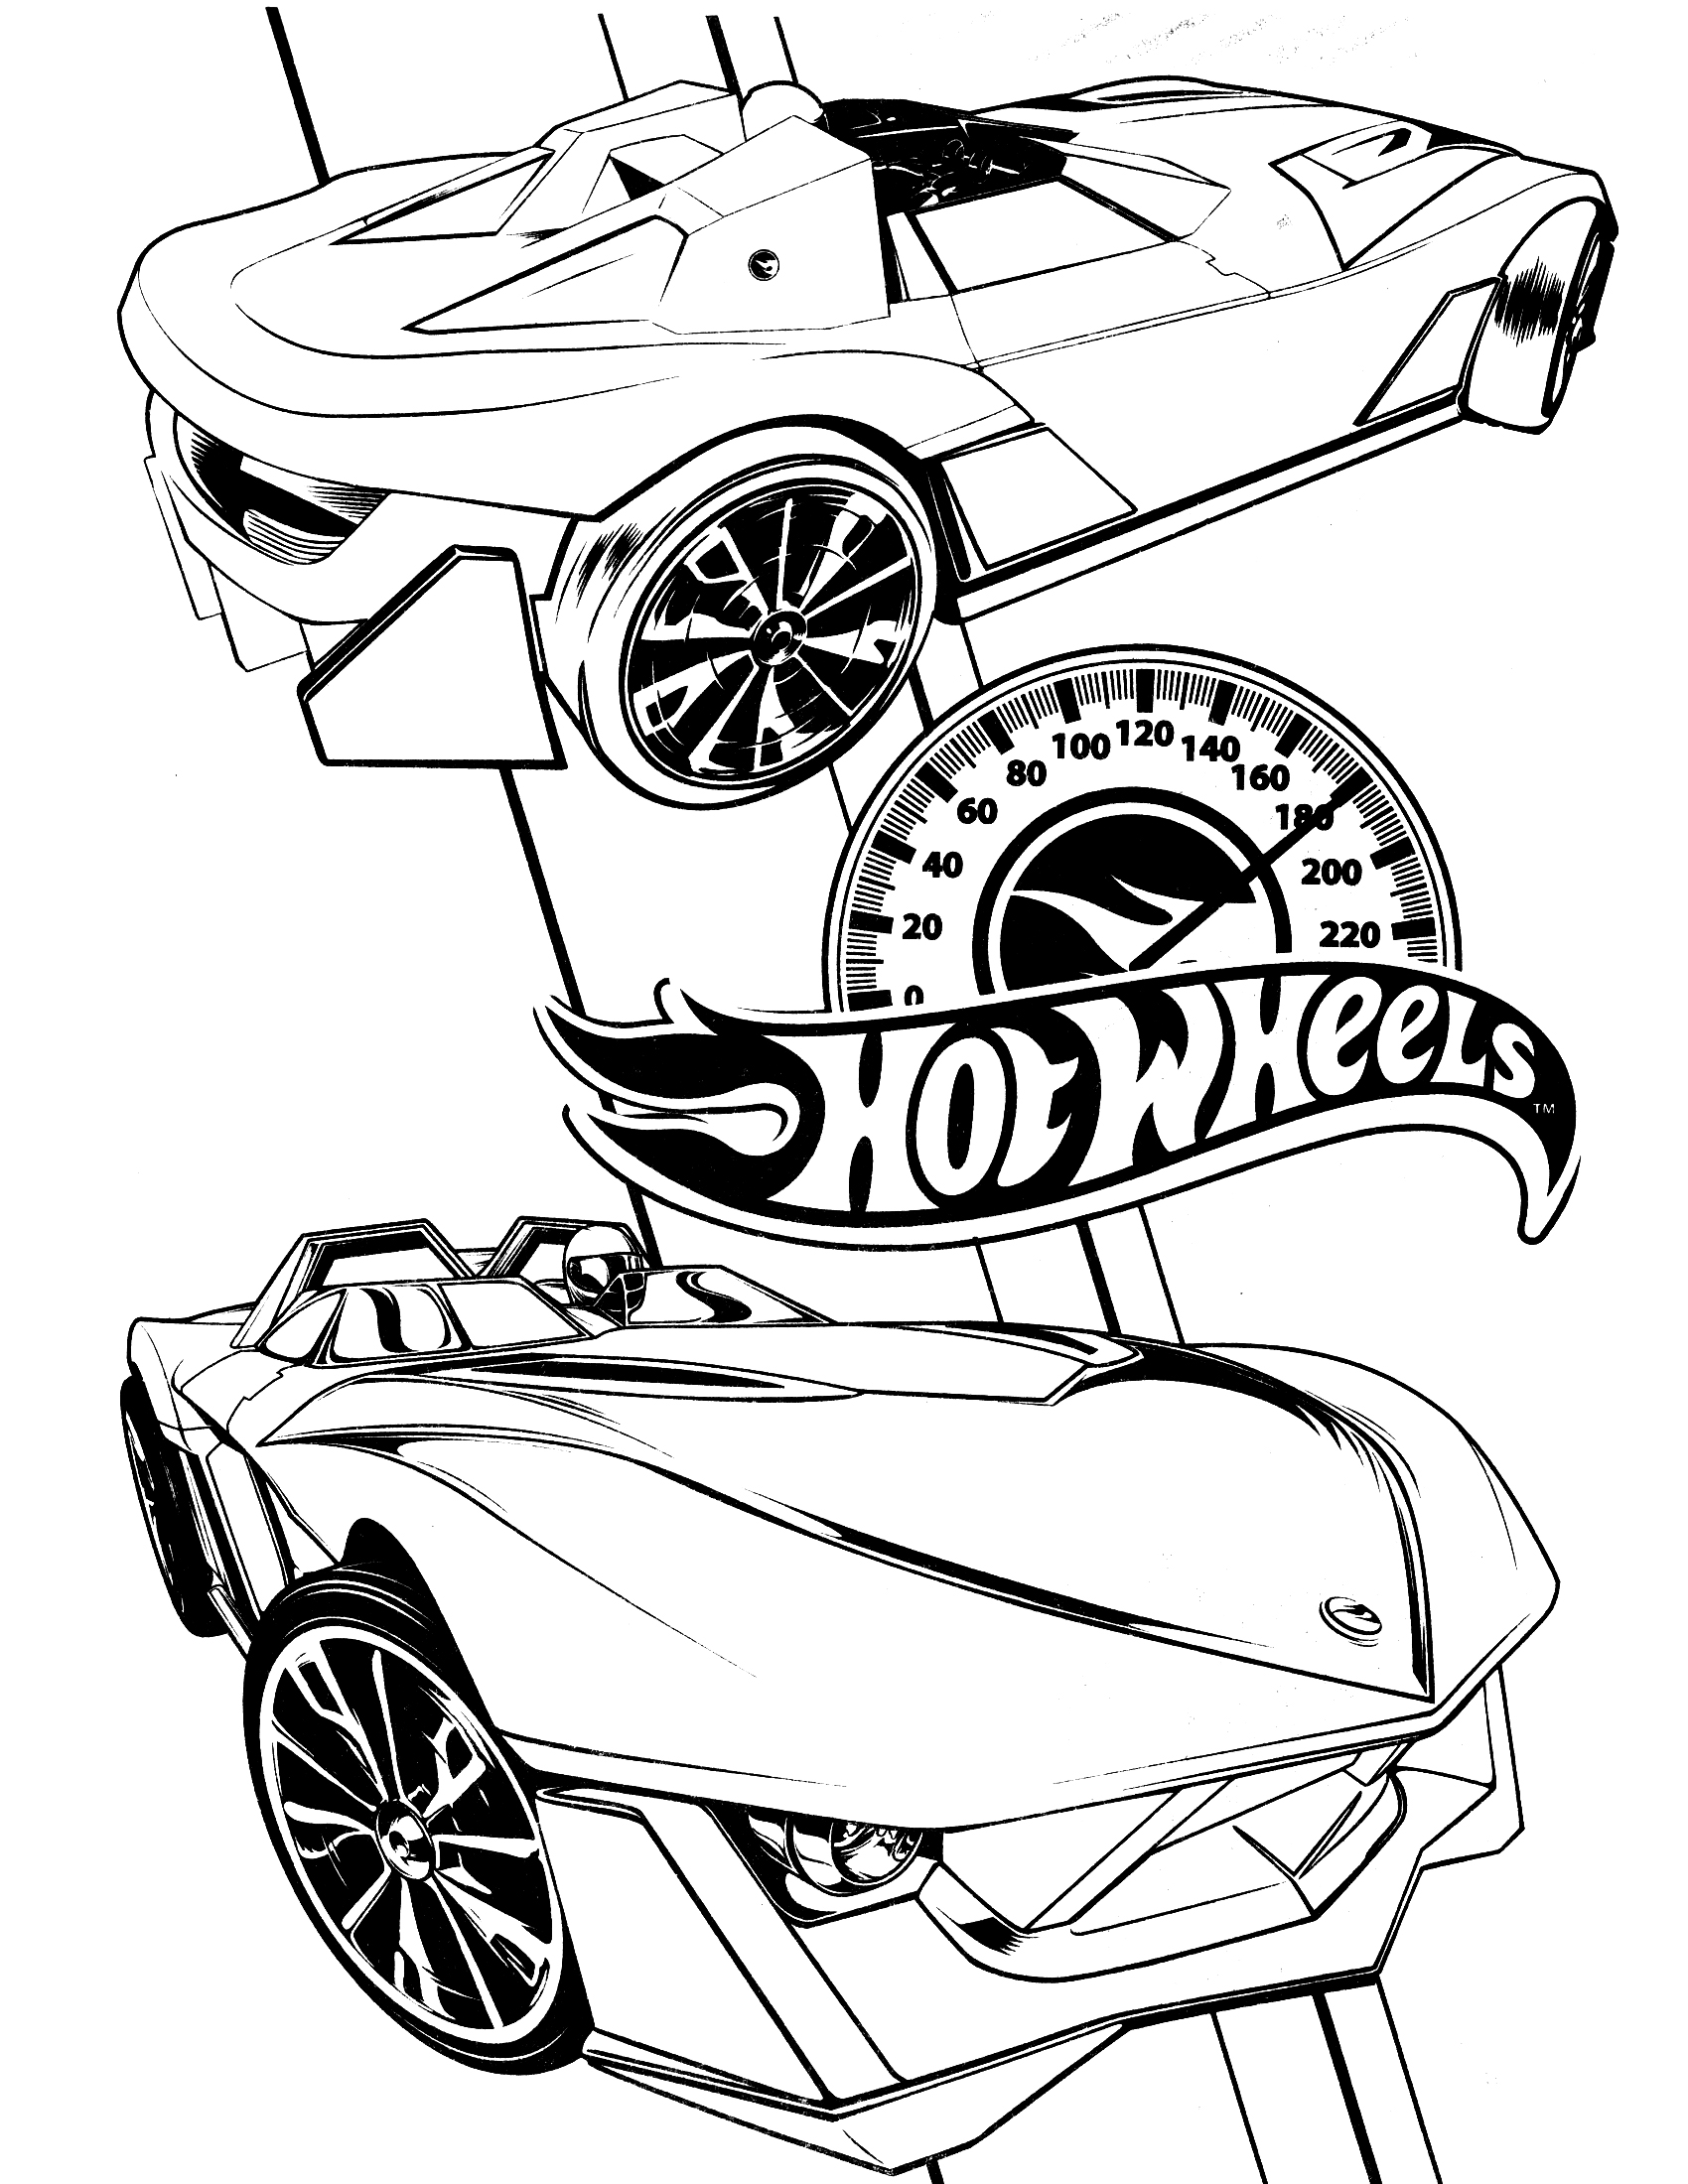 Free printable hot wheels coloring pages for kids for Wheel coloring page